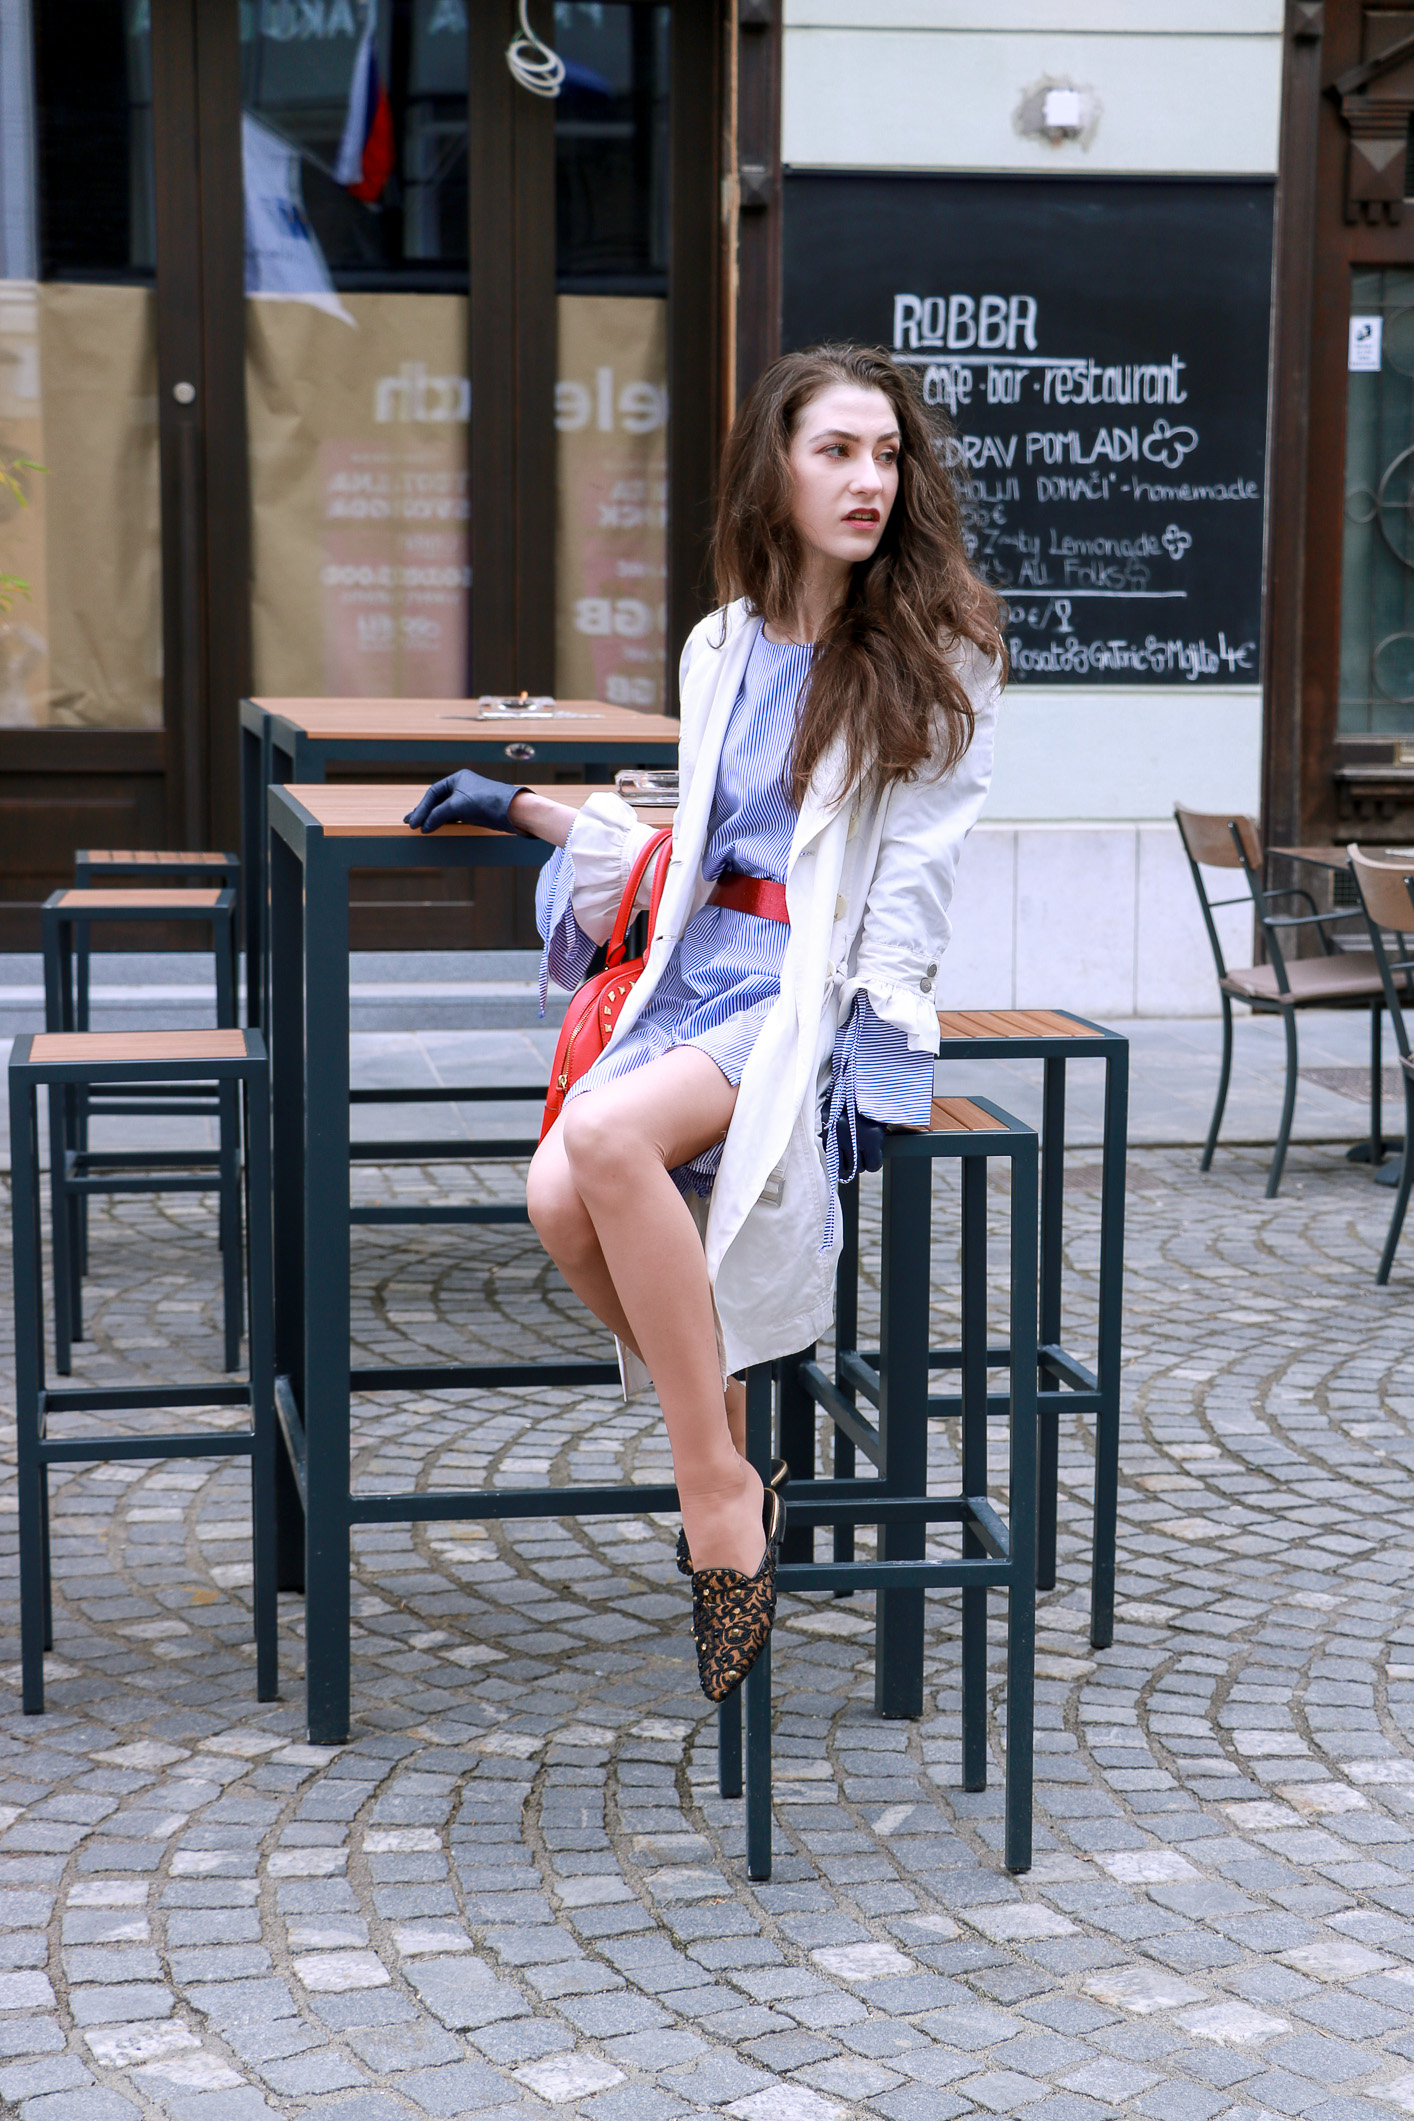 Fashion blogger Veronika Lipar of Brunette From Wall Street sharing how to look fashionable in flats